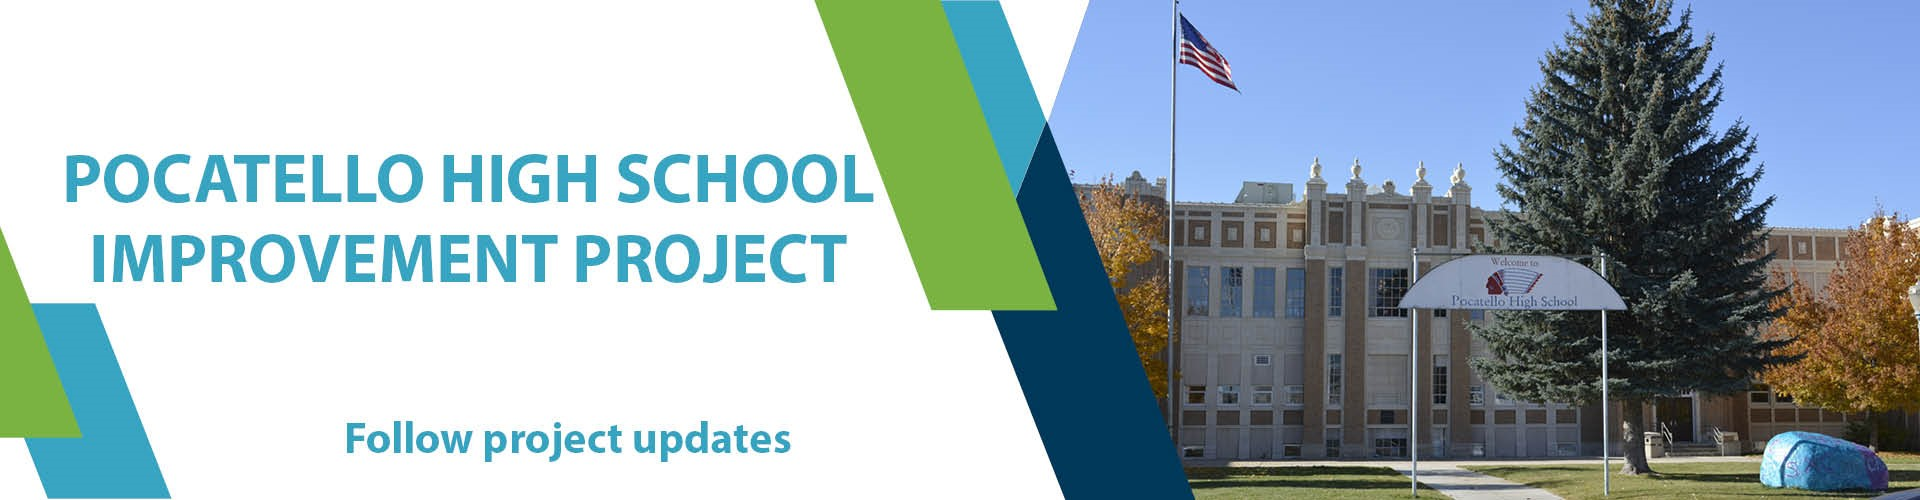 Follow Pocatello High School Improvement Project updates.